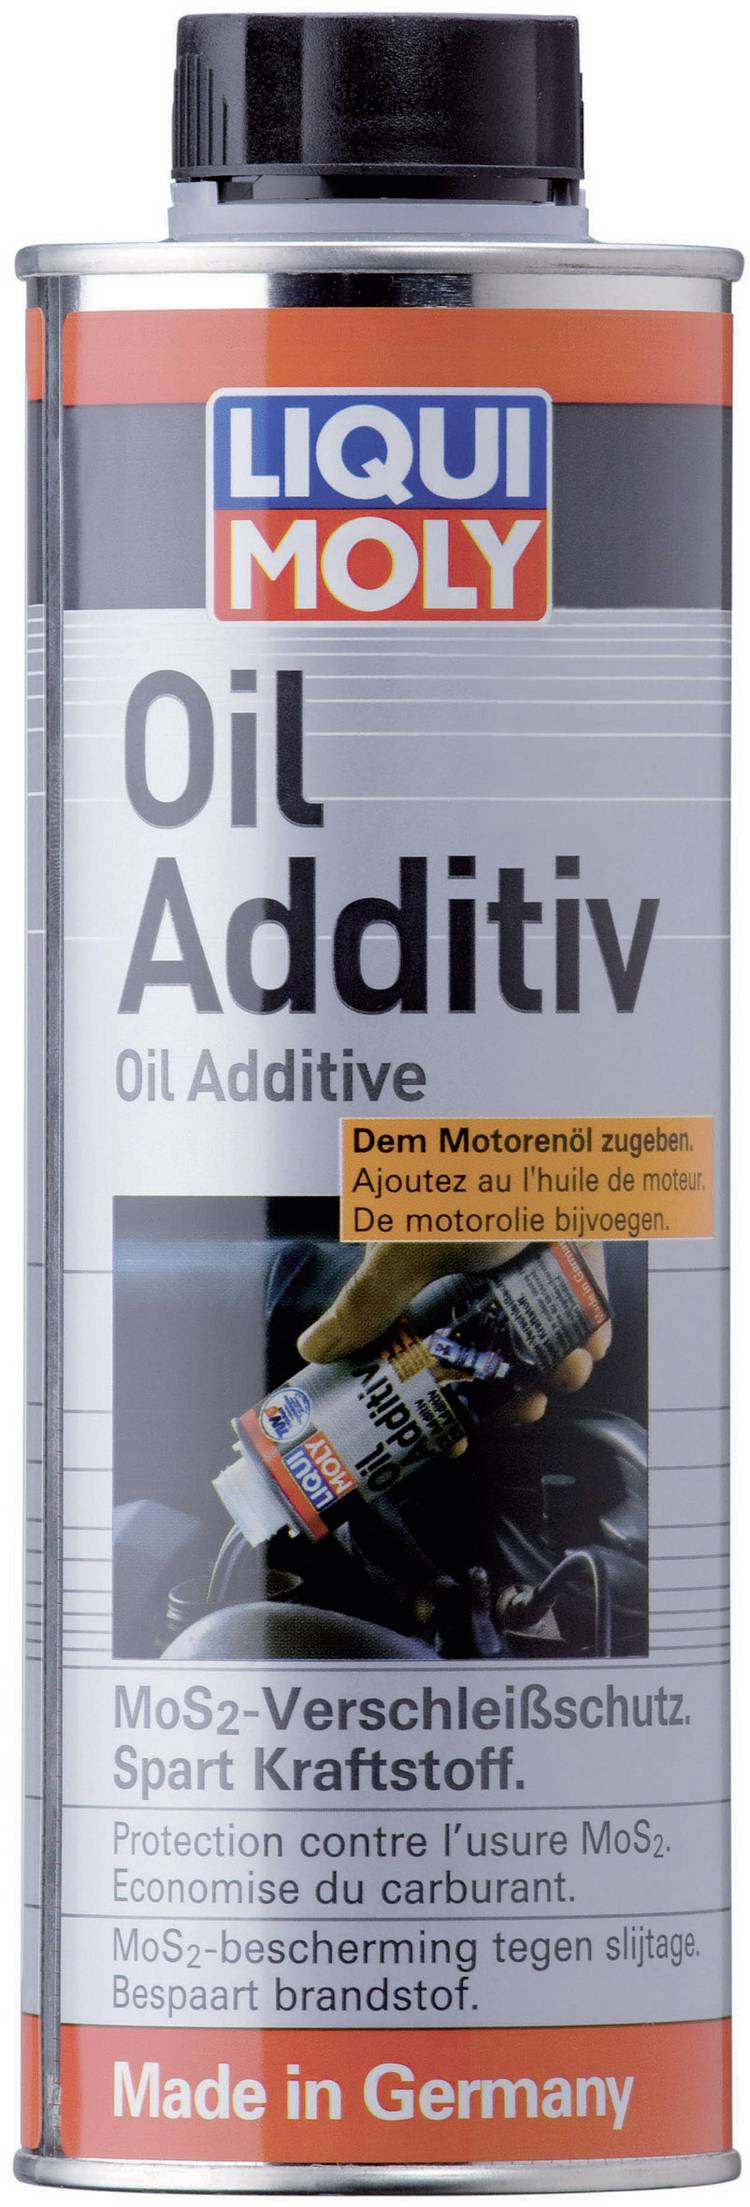 Liqui Moly 1013 olie-additief 500 ml